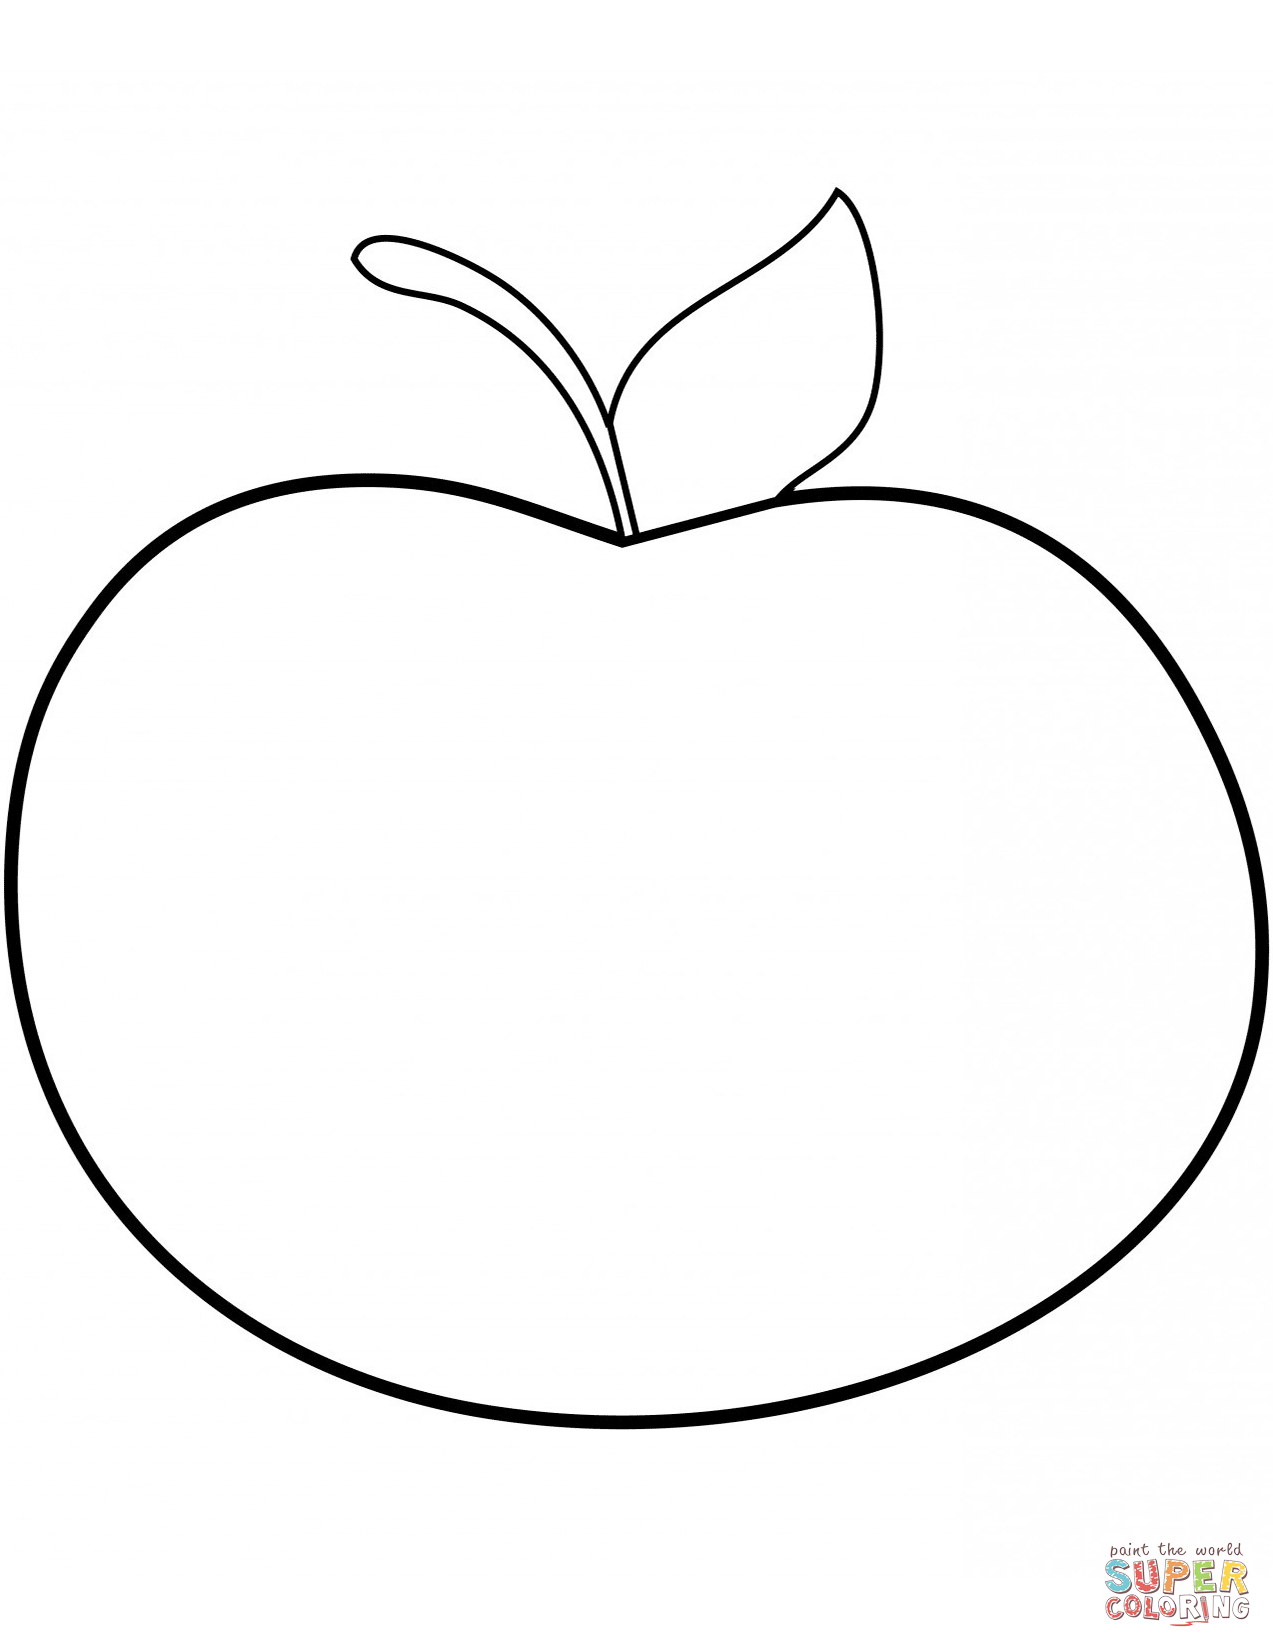 1273x1648 Apple Color Page Coloring To Sweet Draw Printable Coloring Pages